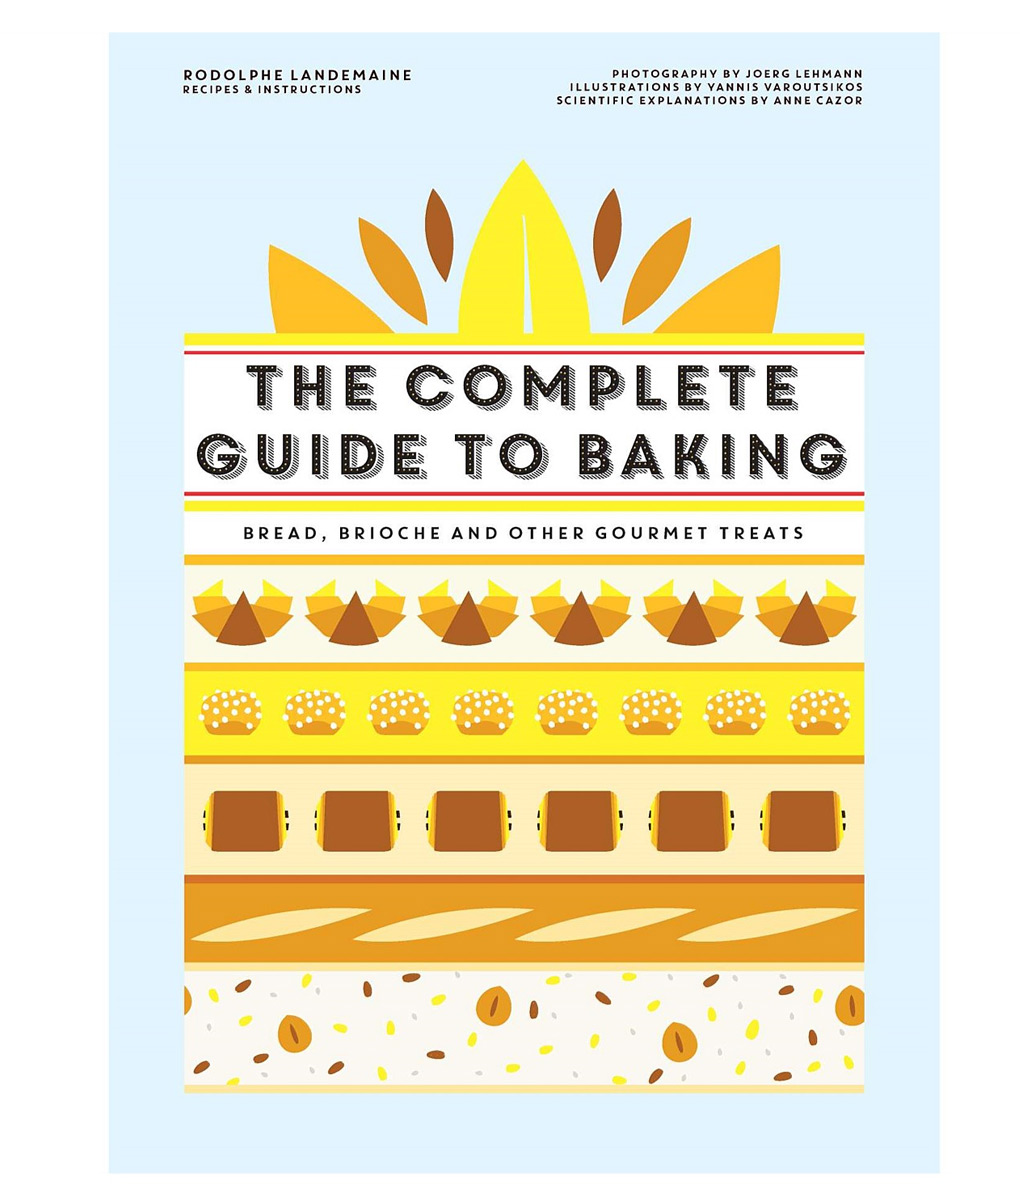 Broadsheet Sydney Food | What To Eat & Where To Get It Culinary Books 4